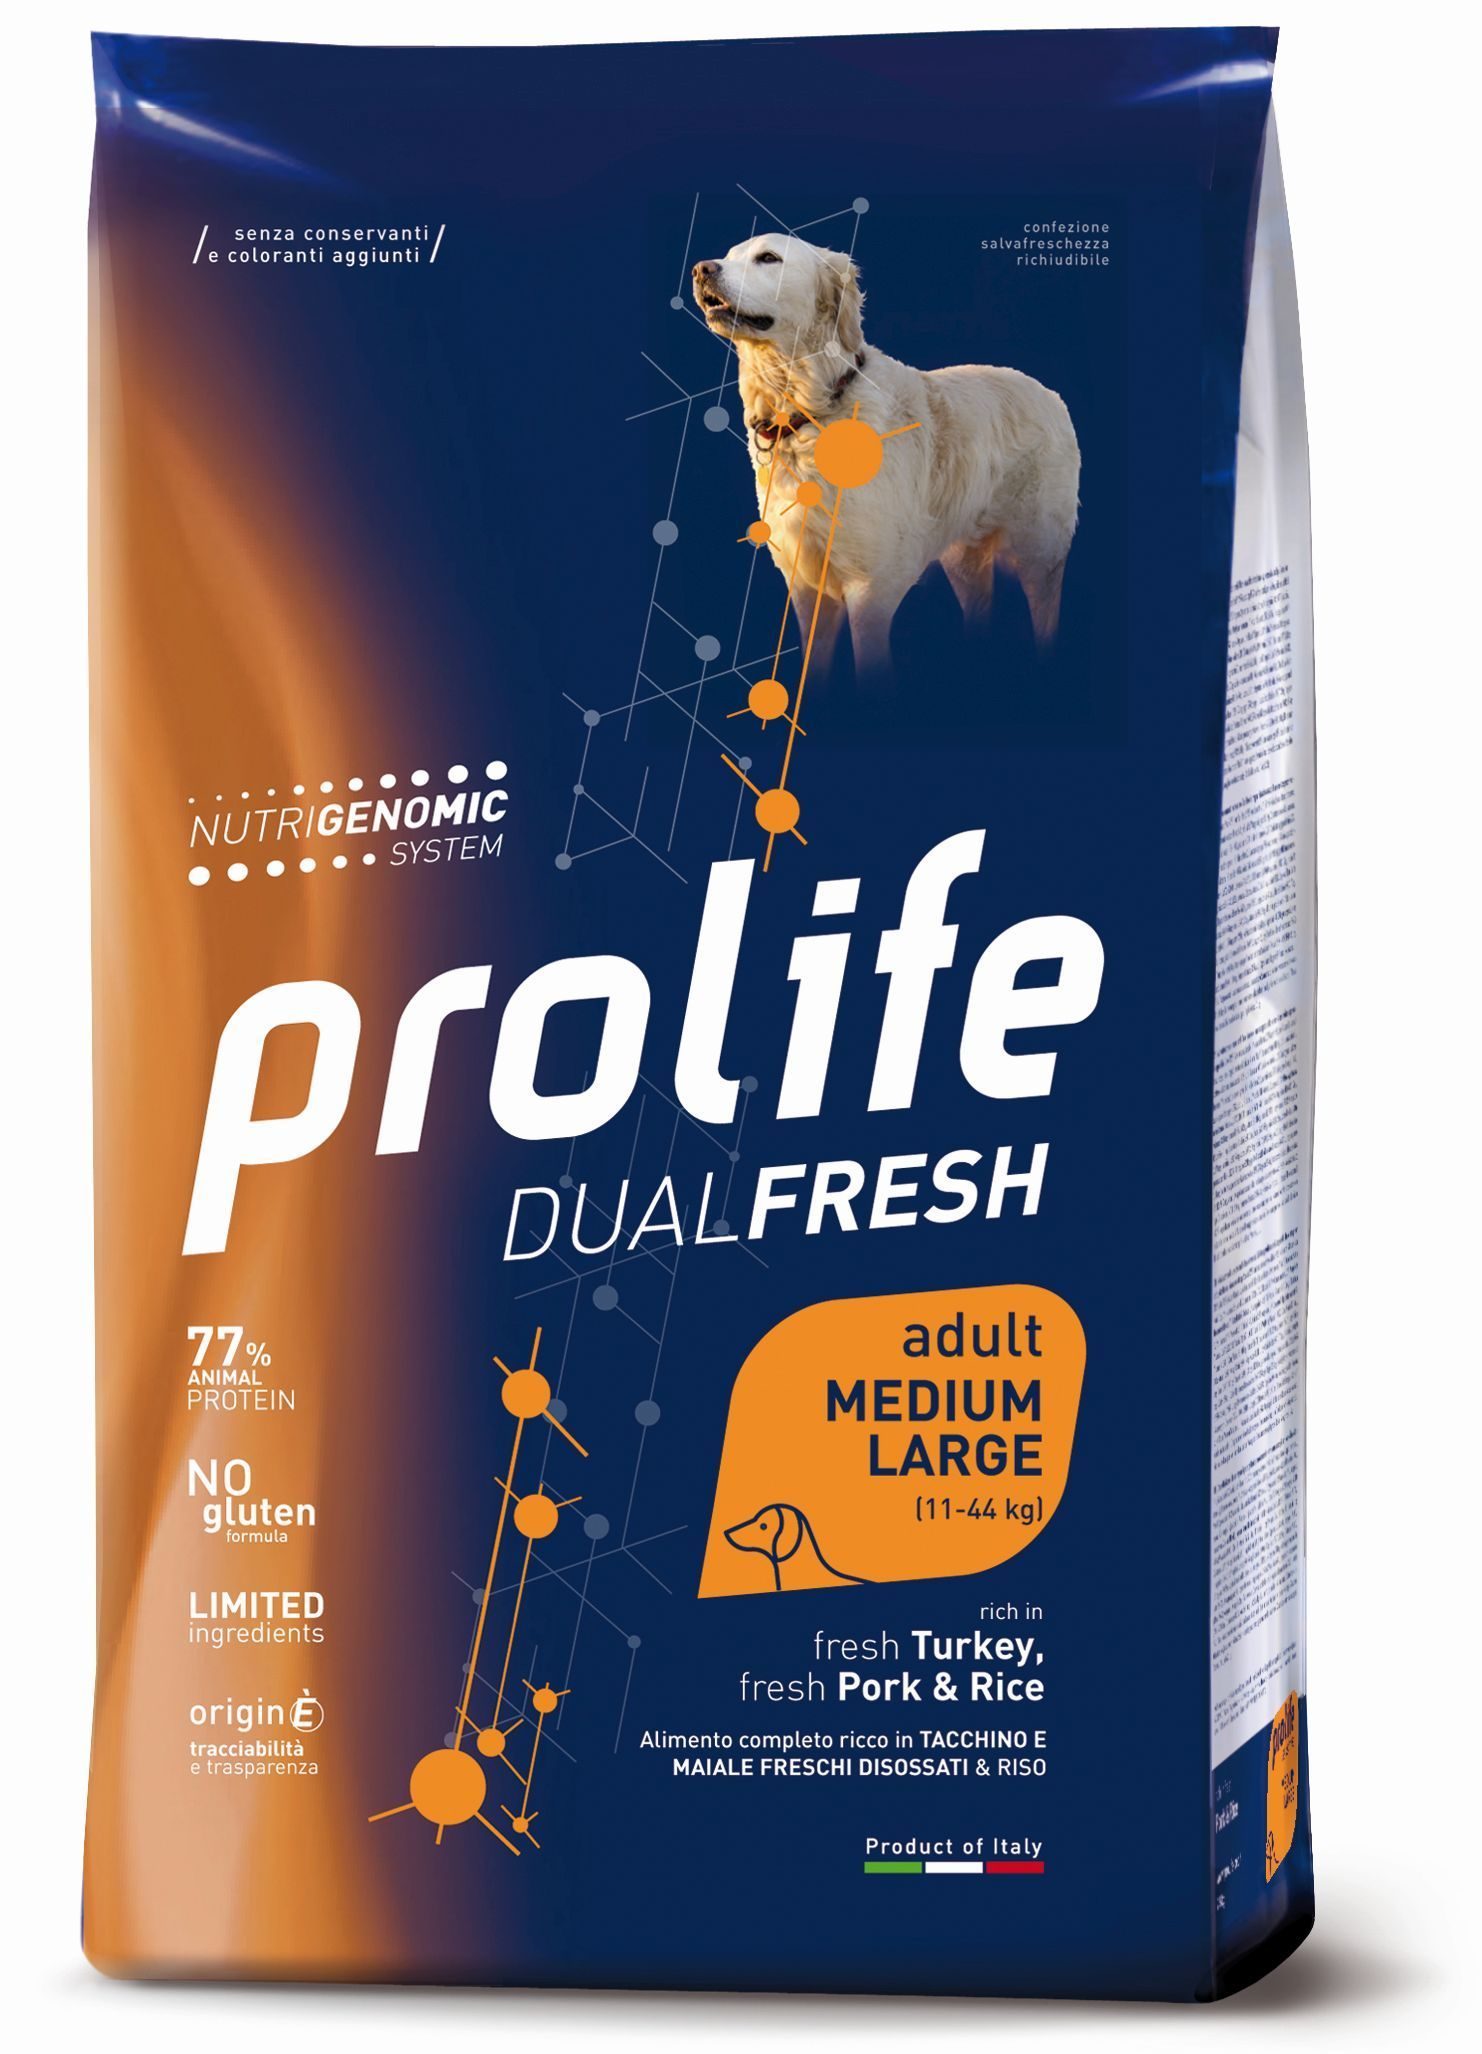 Complete pet food, rich in fresh deboned chicken and rice for giant breed puppies.